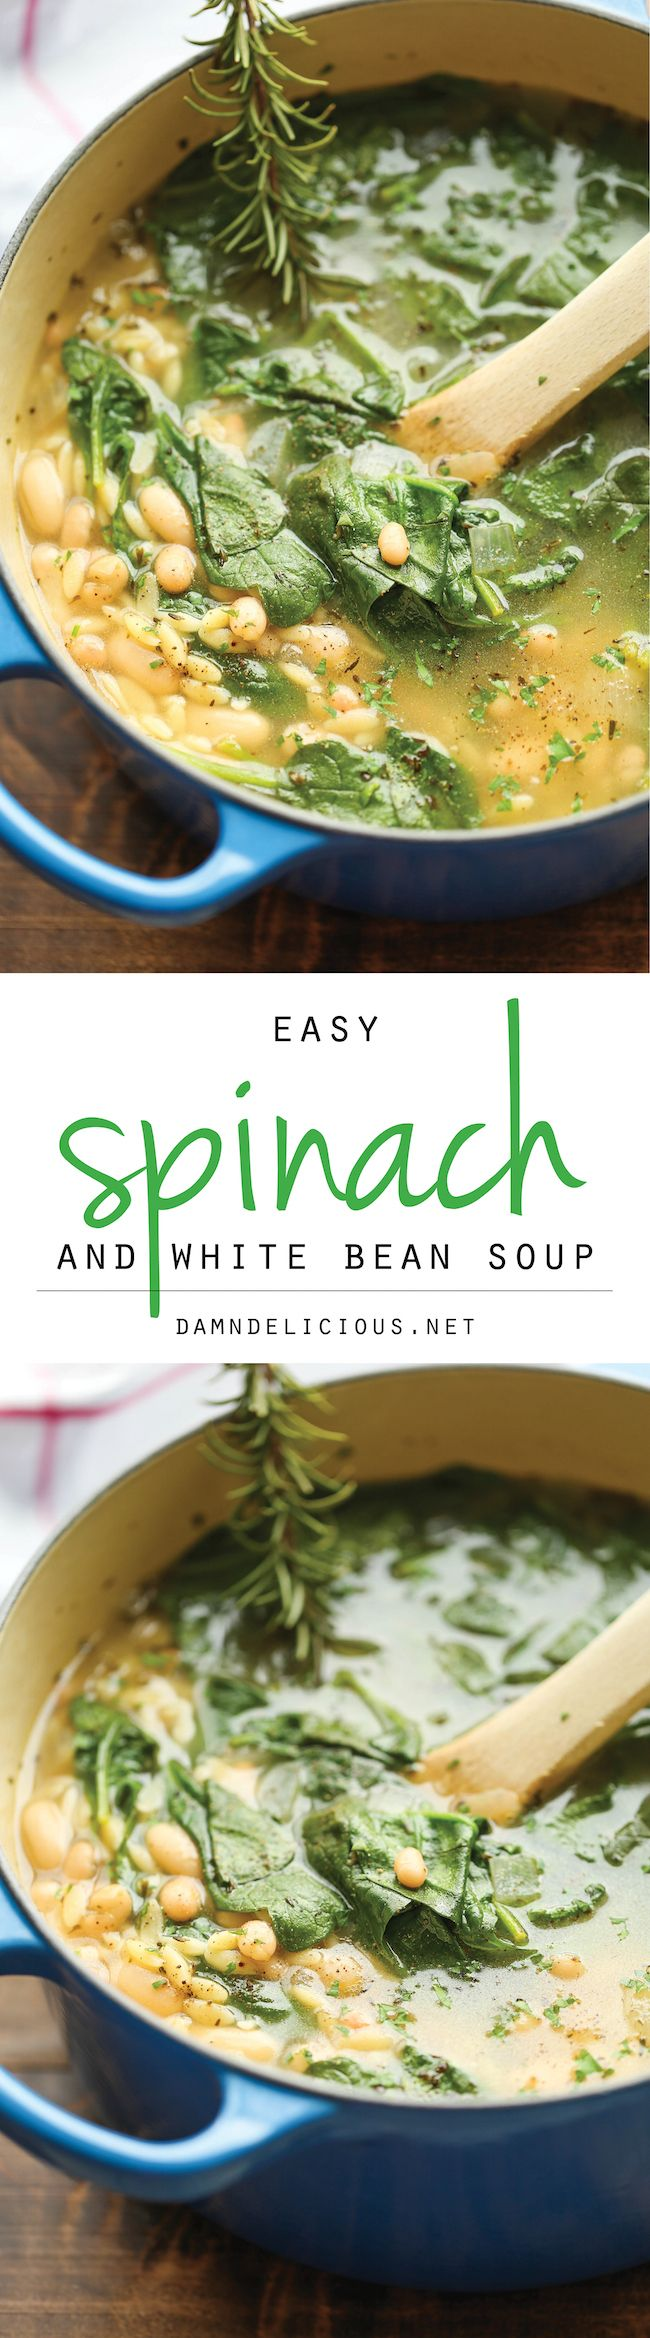 shopping online Spinach and White Bean Soup   A healthy and hearty  comforting soup   chock full of fresh spinach  white beans and orzo pasta   made in less than 30 min